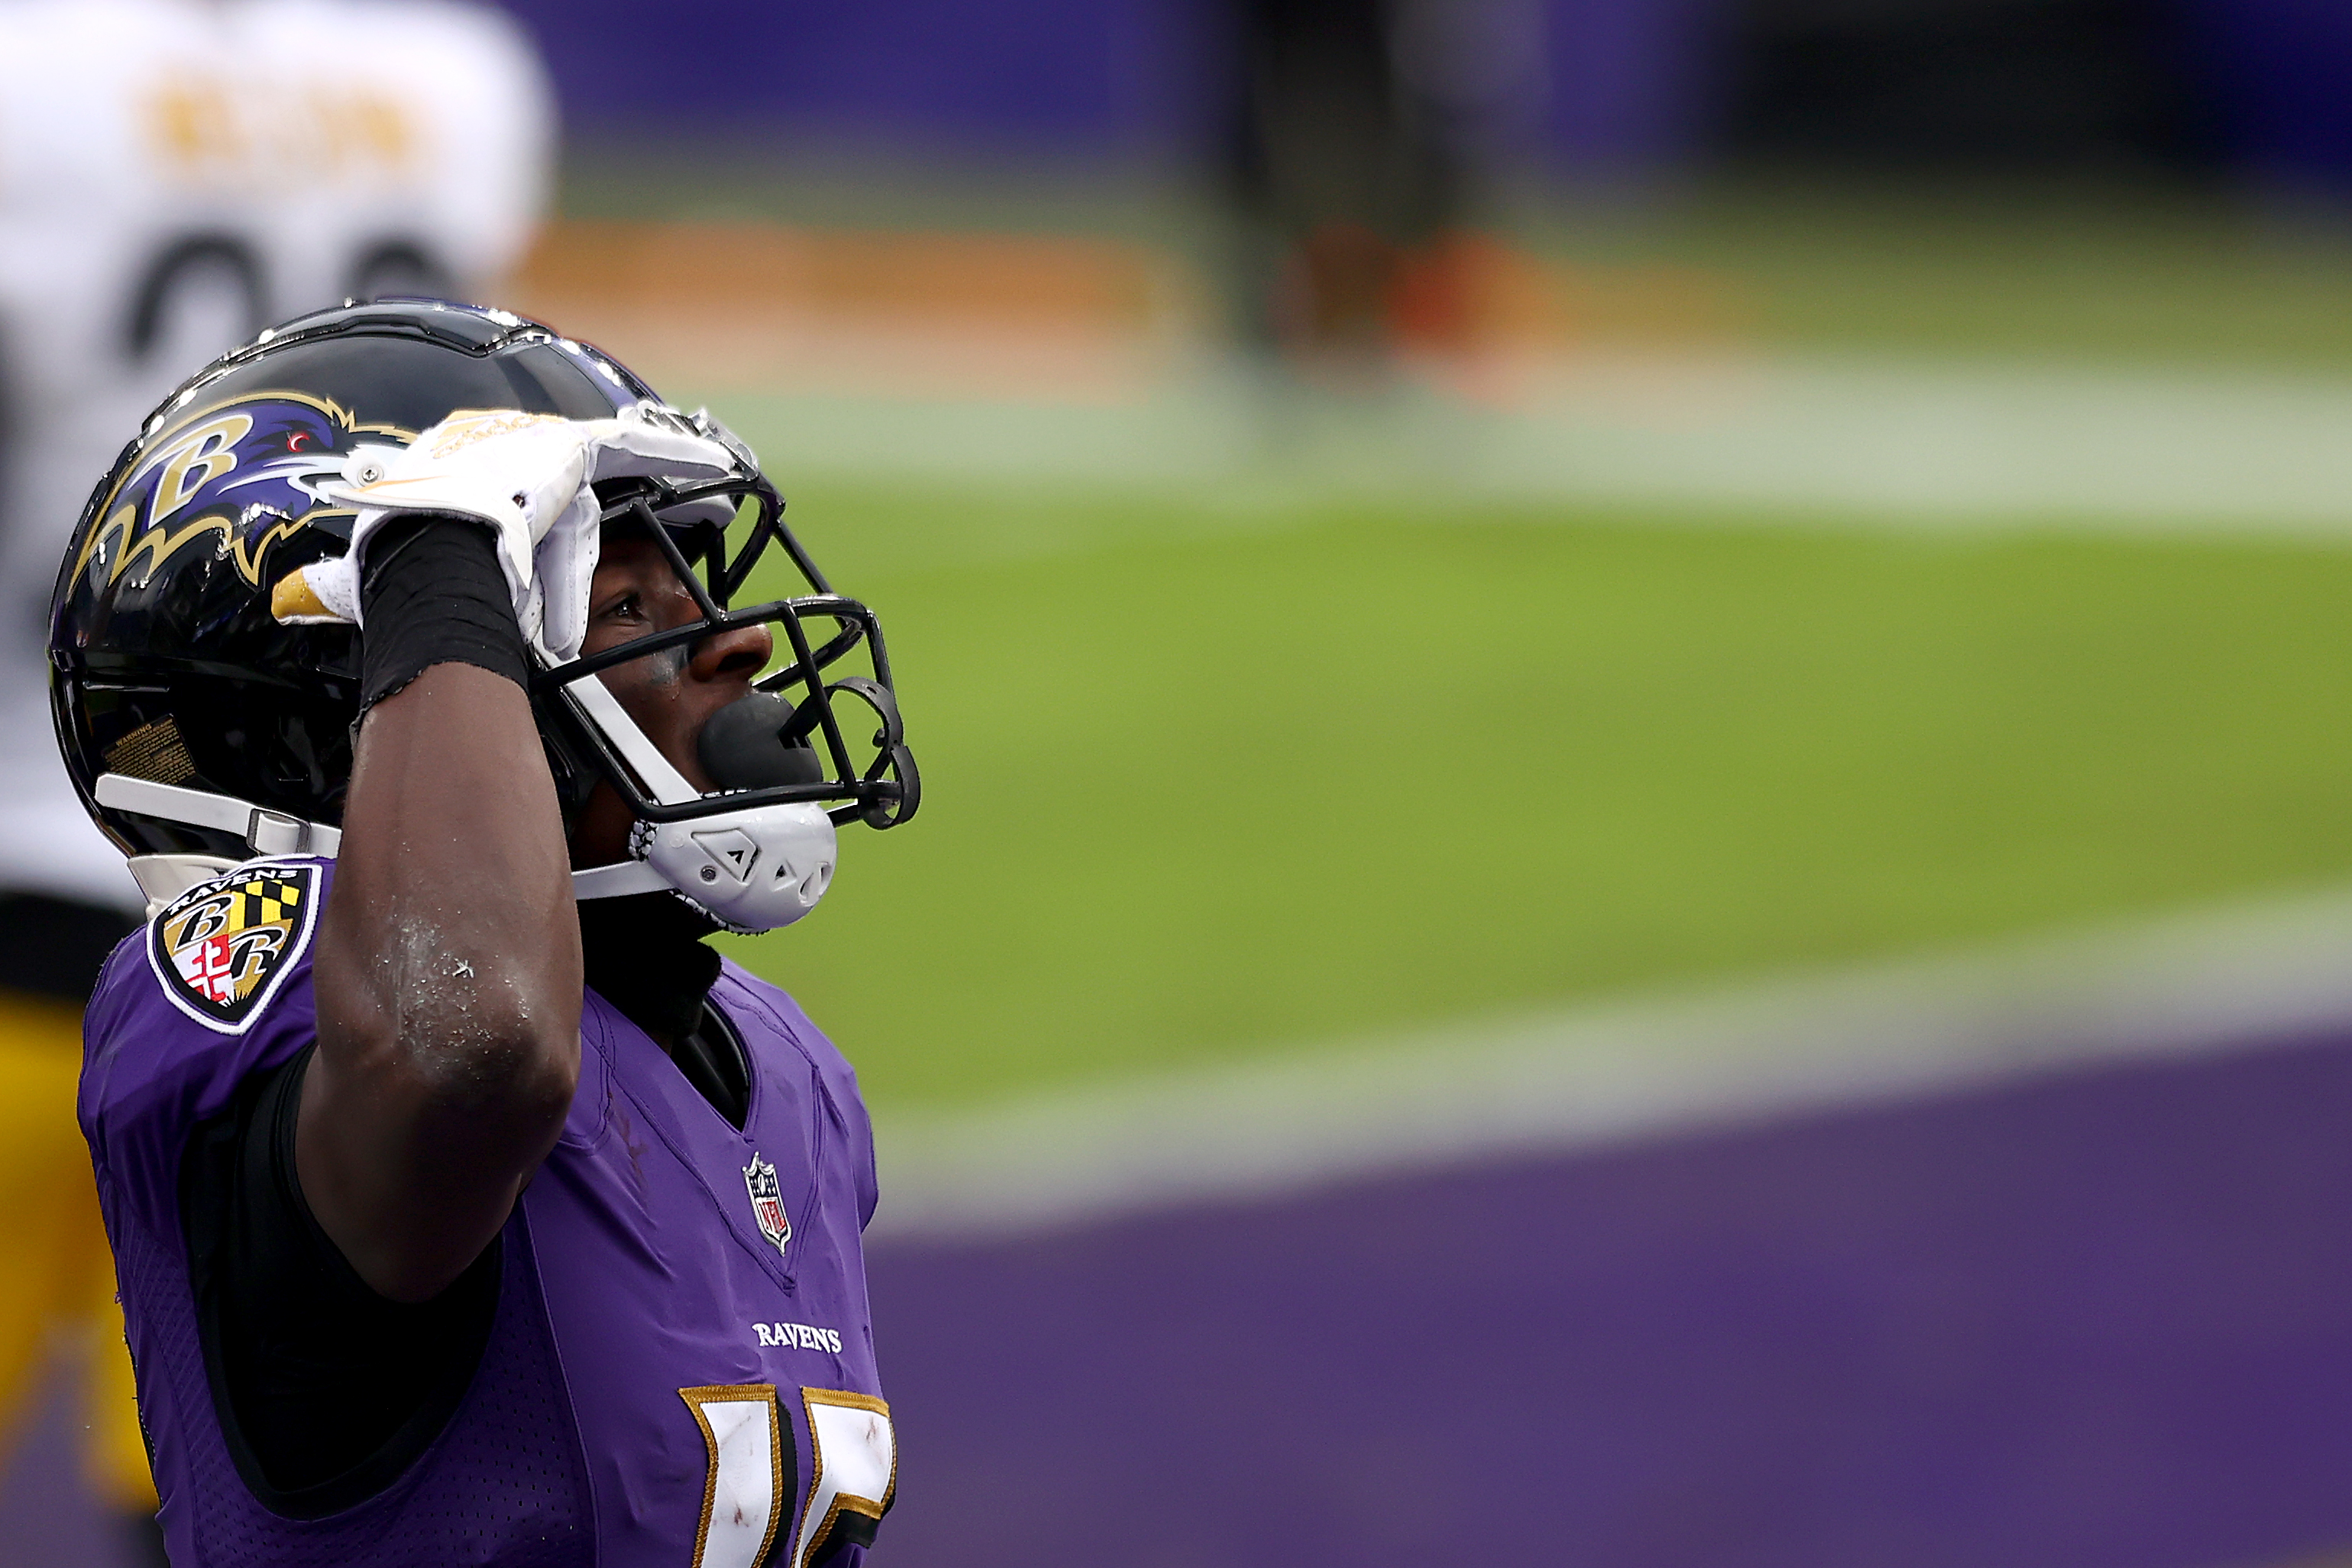 Baltimore Ravens receiver Marquise Brown's numbers are way down in 2020, and he shared his anger in a now-deleted tweet. Will the Ravens move on from Brown?